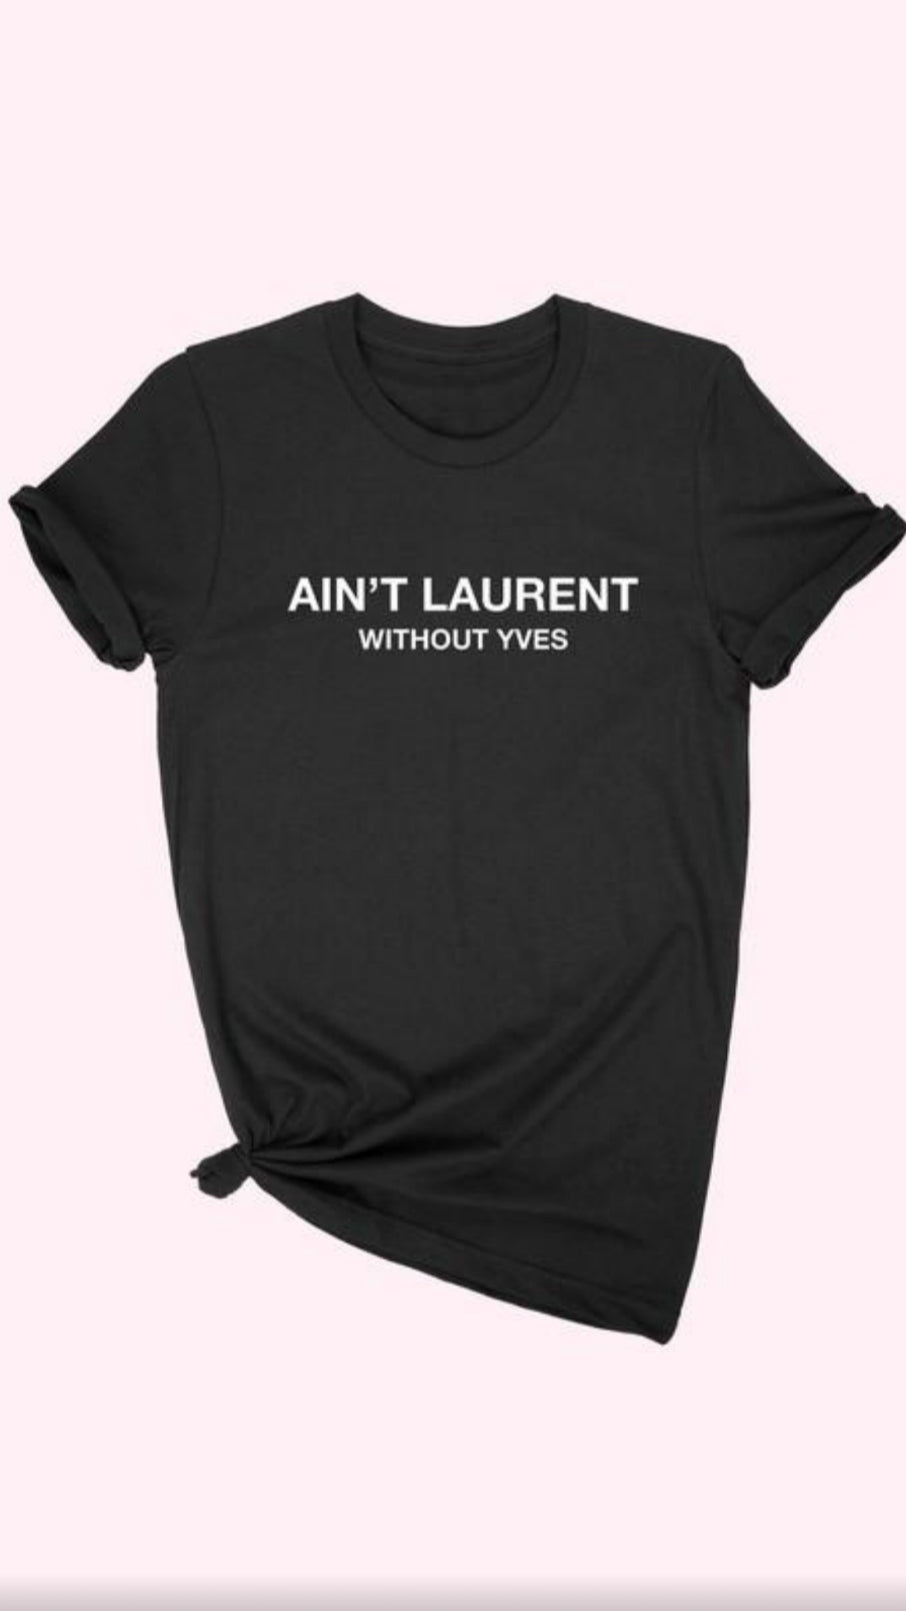 Ain't Laurent T-Shirt.